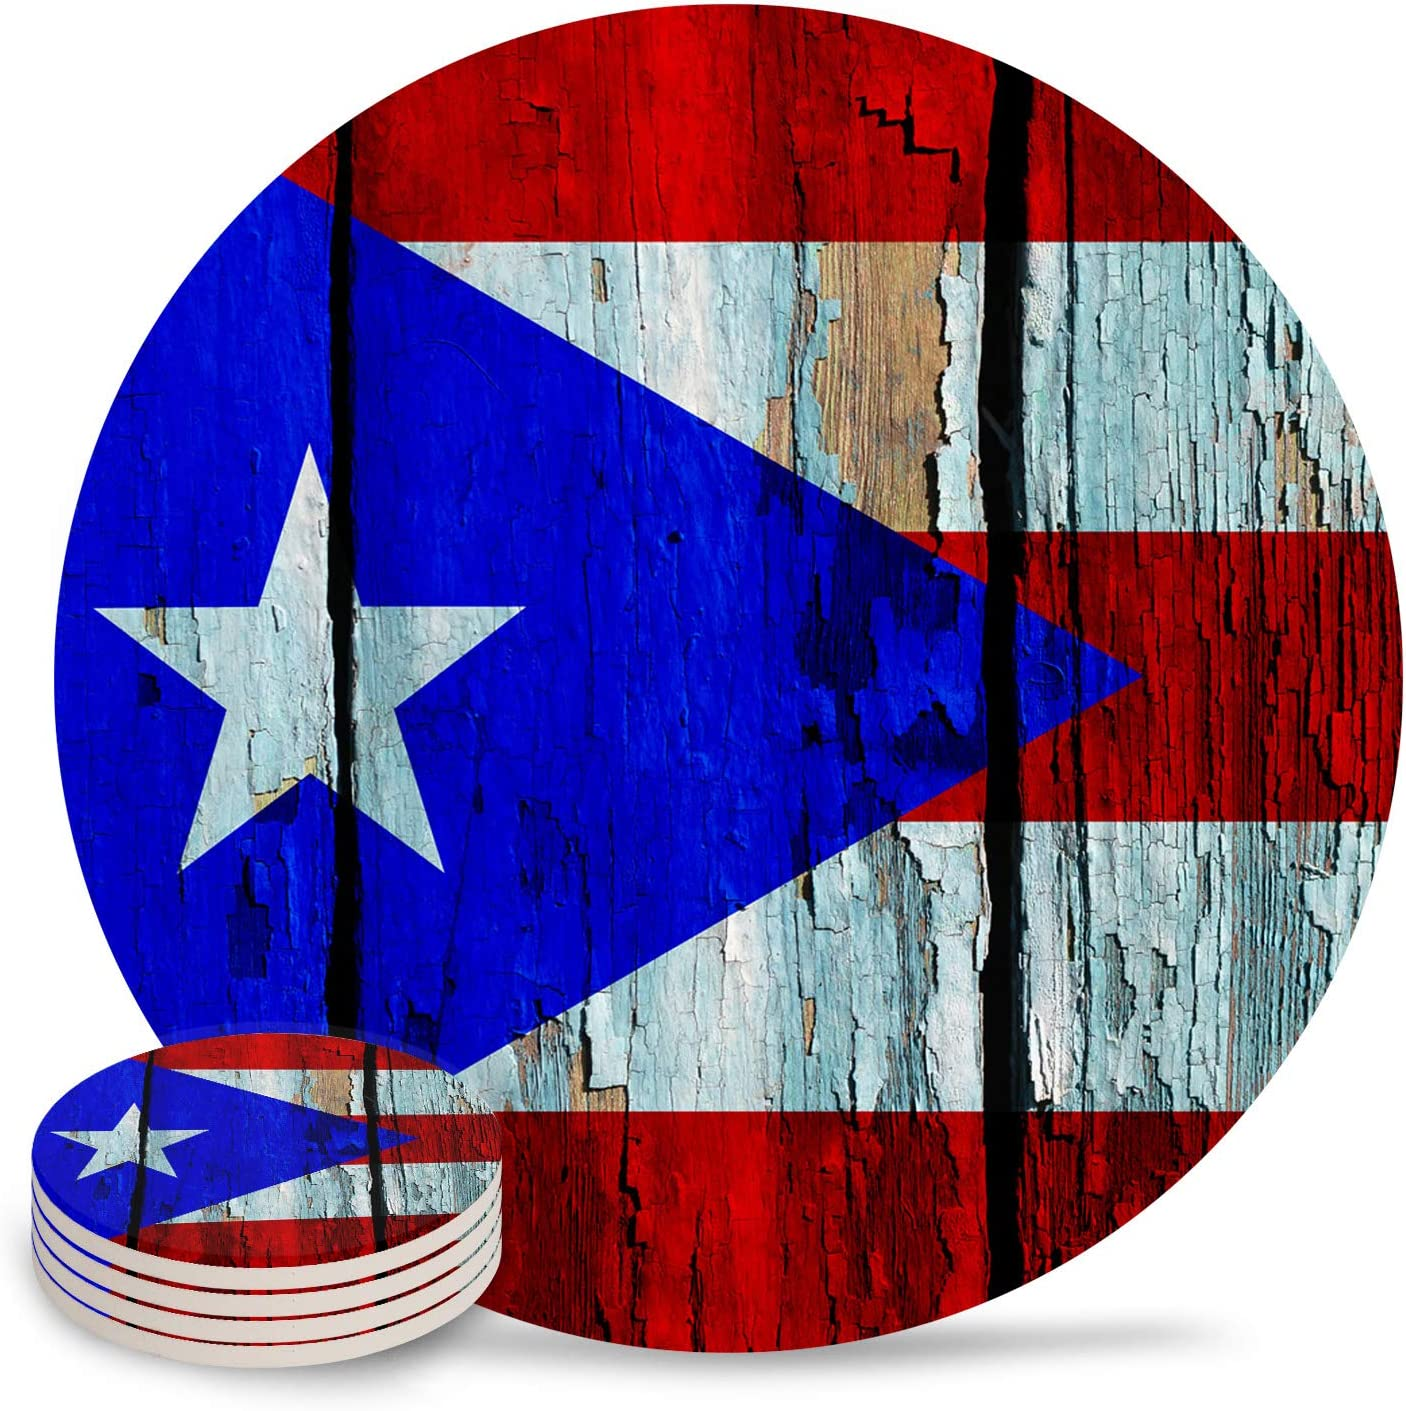 Set of 4 Coasters for Drinks, Absorbing Stone Puerto Rico Flag Ceramic Round Coaster with Cork Base No Holder, for Housewarming Coffee Kitchen Room Bar Decor (4 Inch)